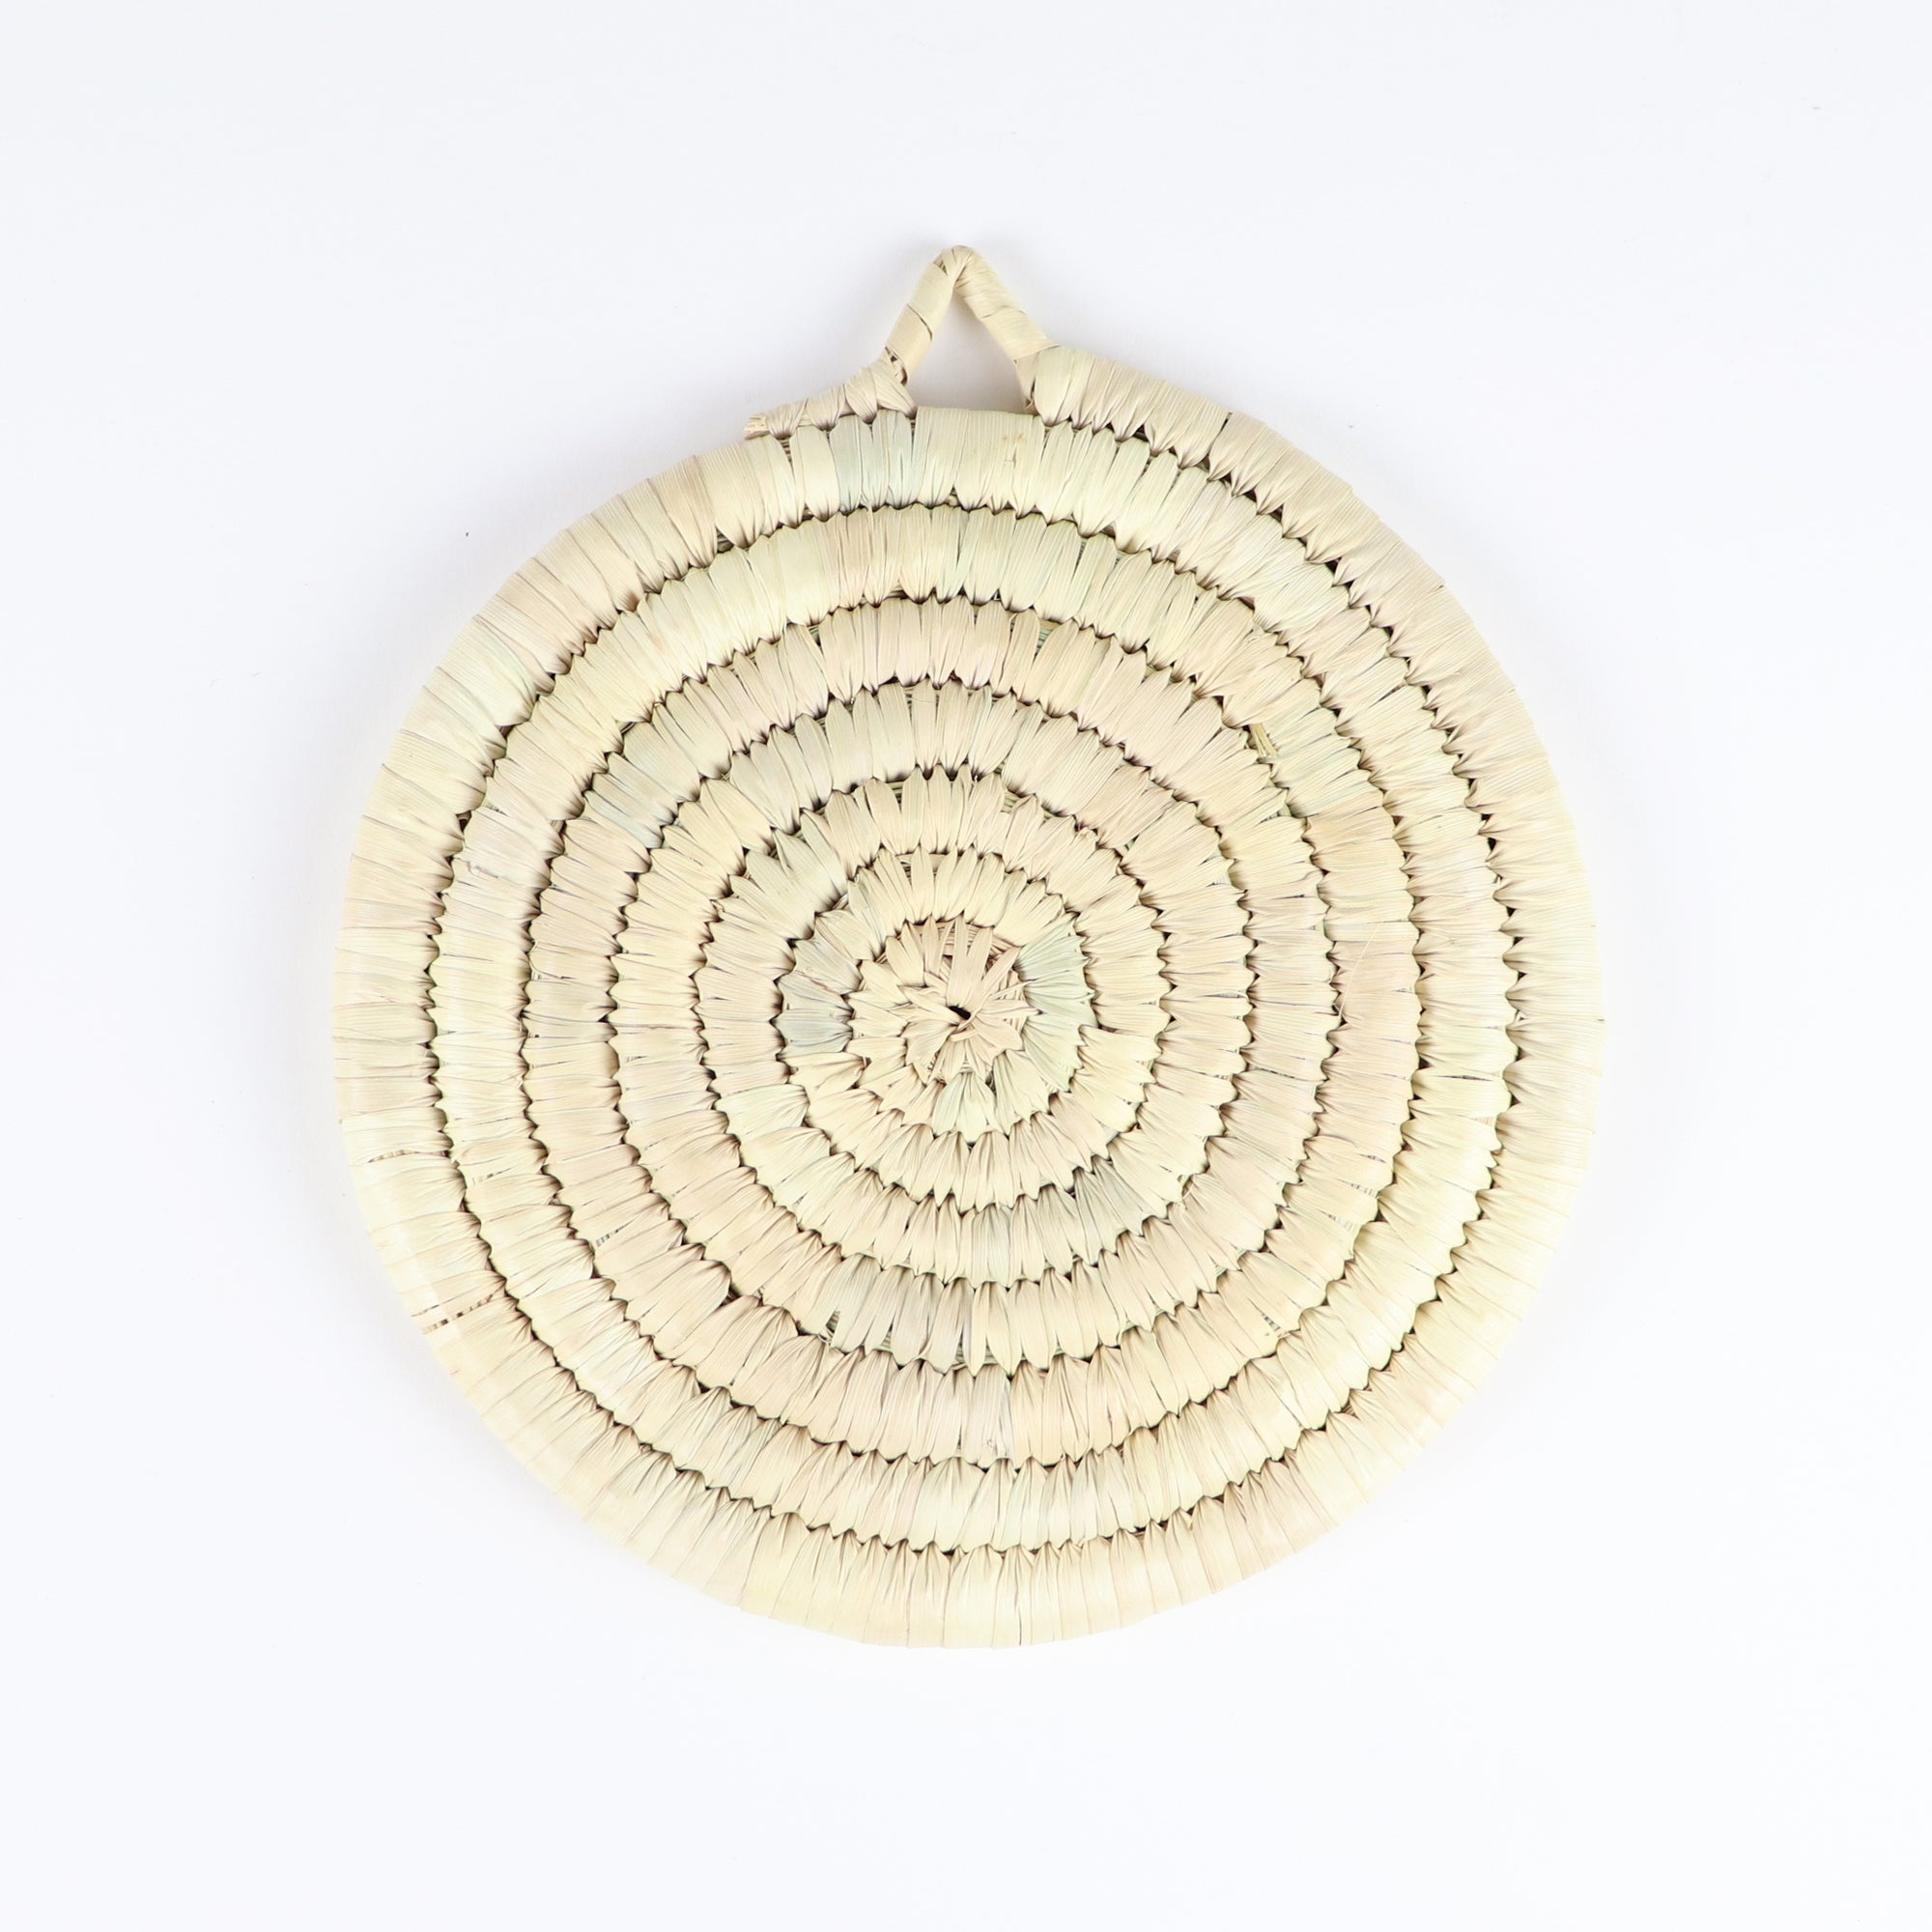 Straw trivet on top of a white table linen